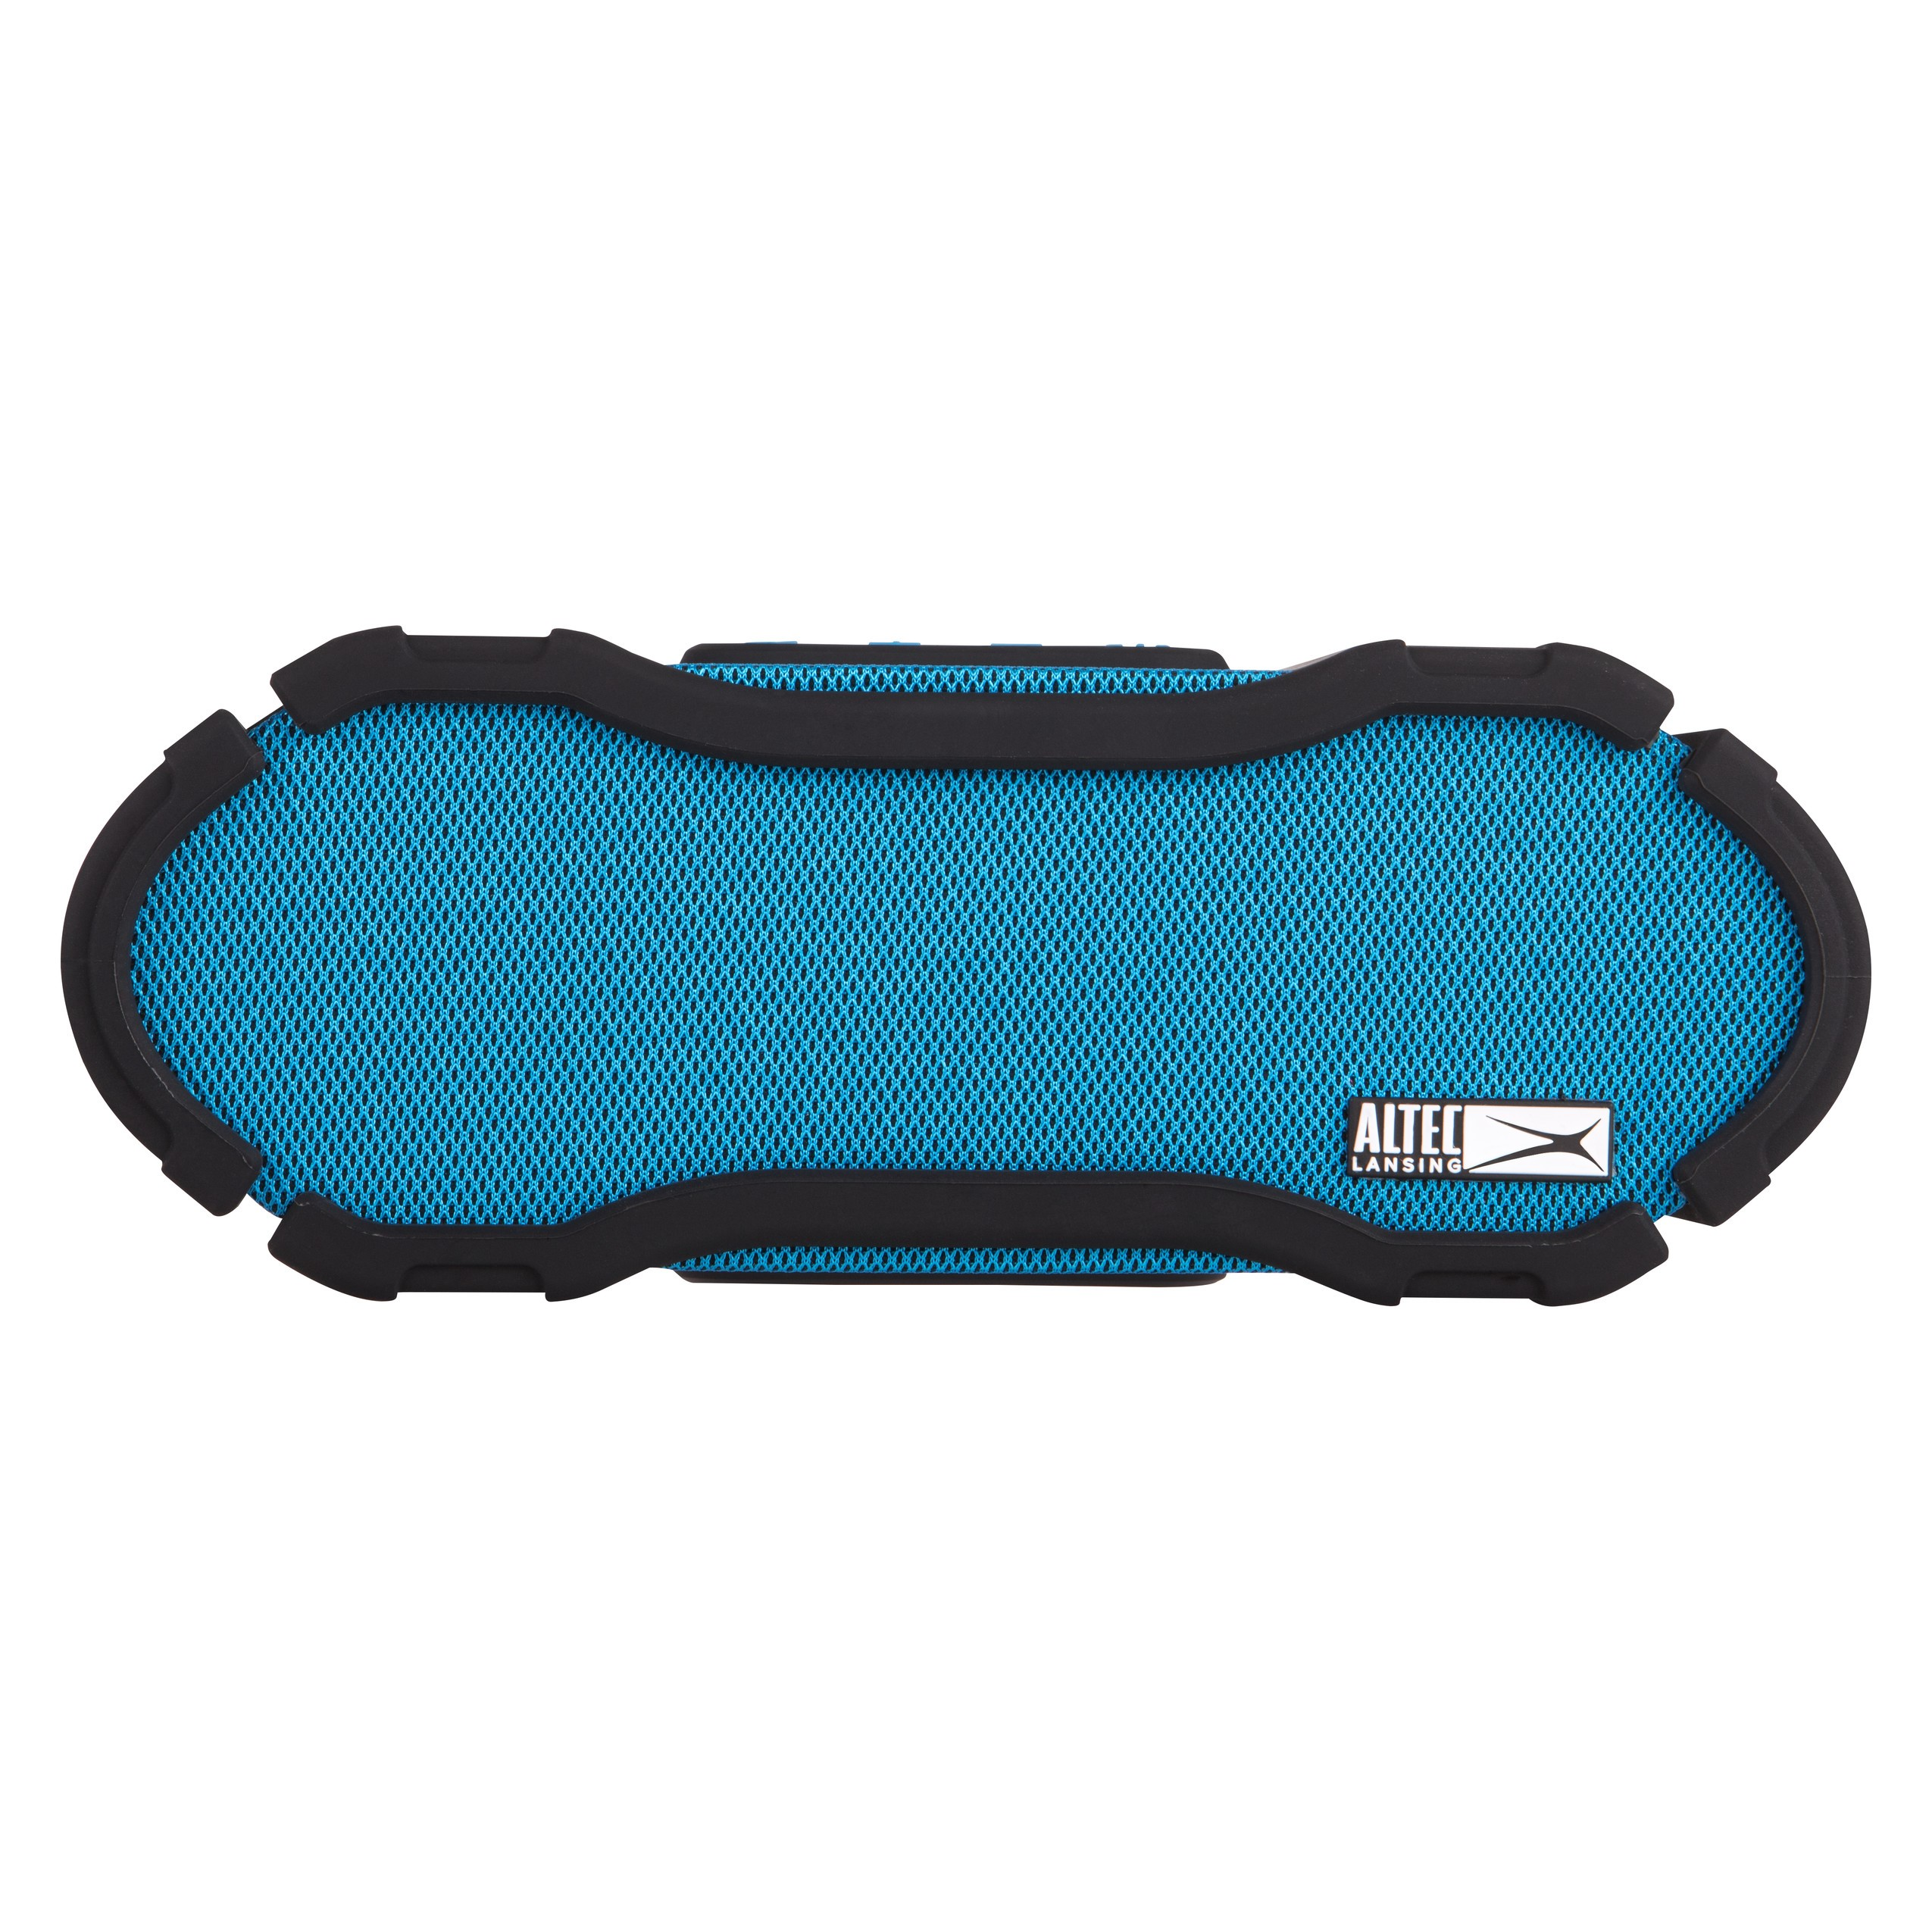 Altec Lansing Omni Jacket iMW678-BLU Speaker Blue by Sakar